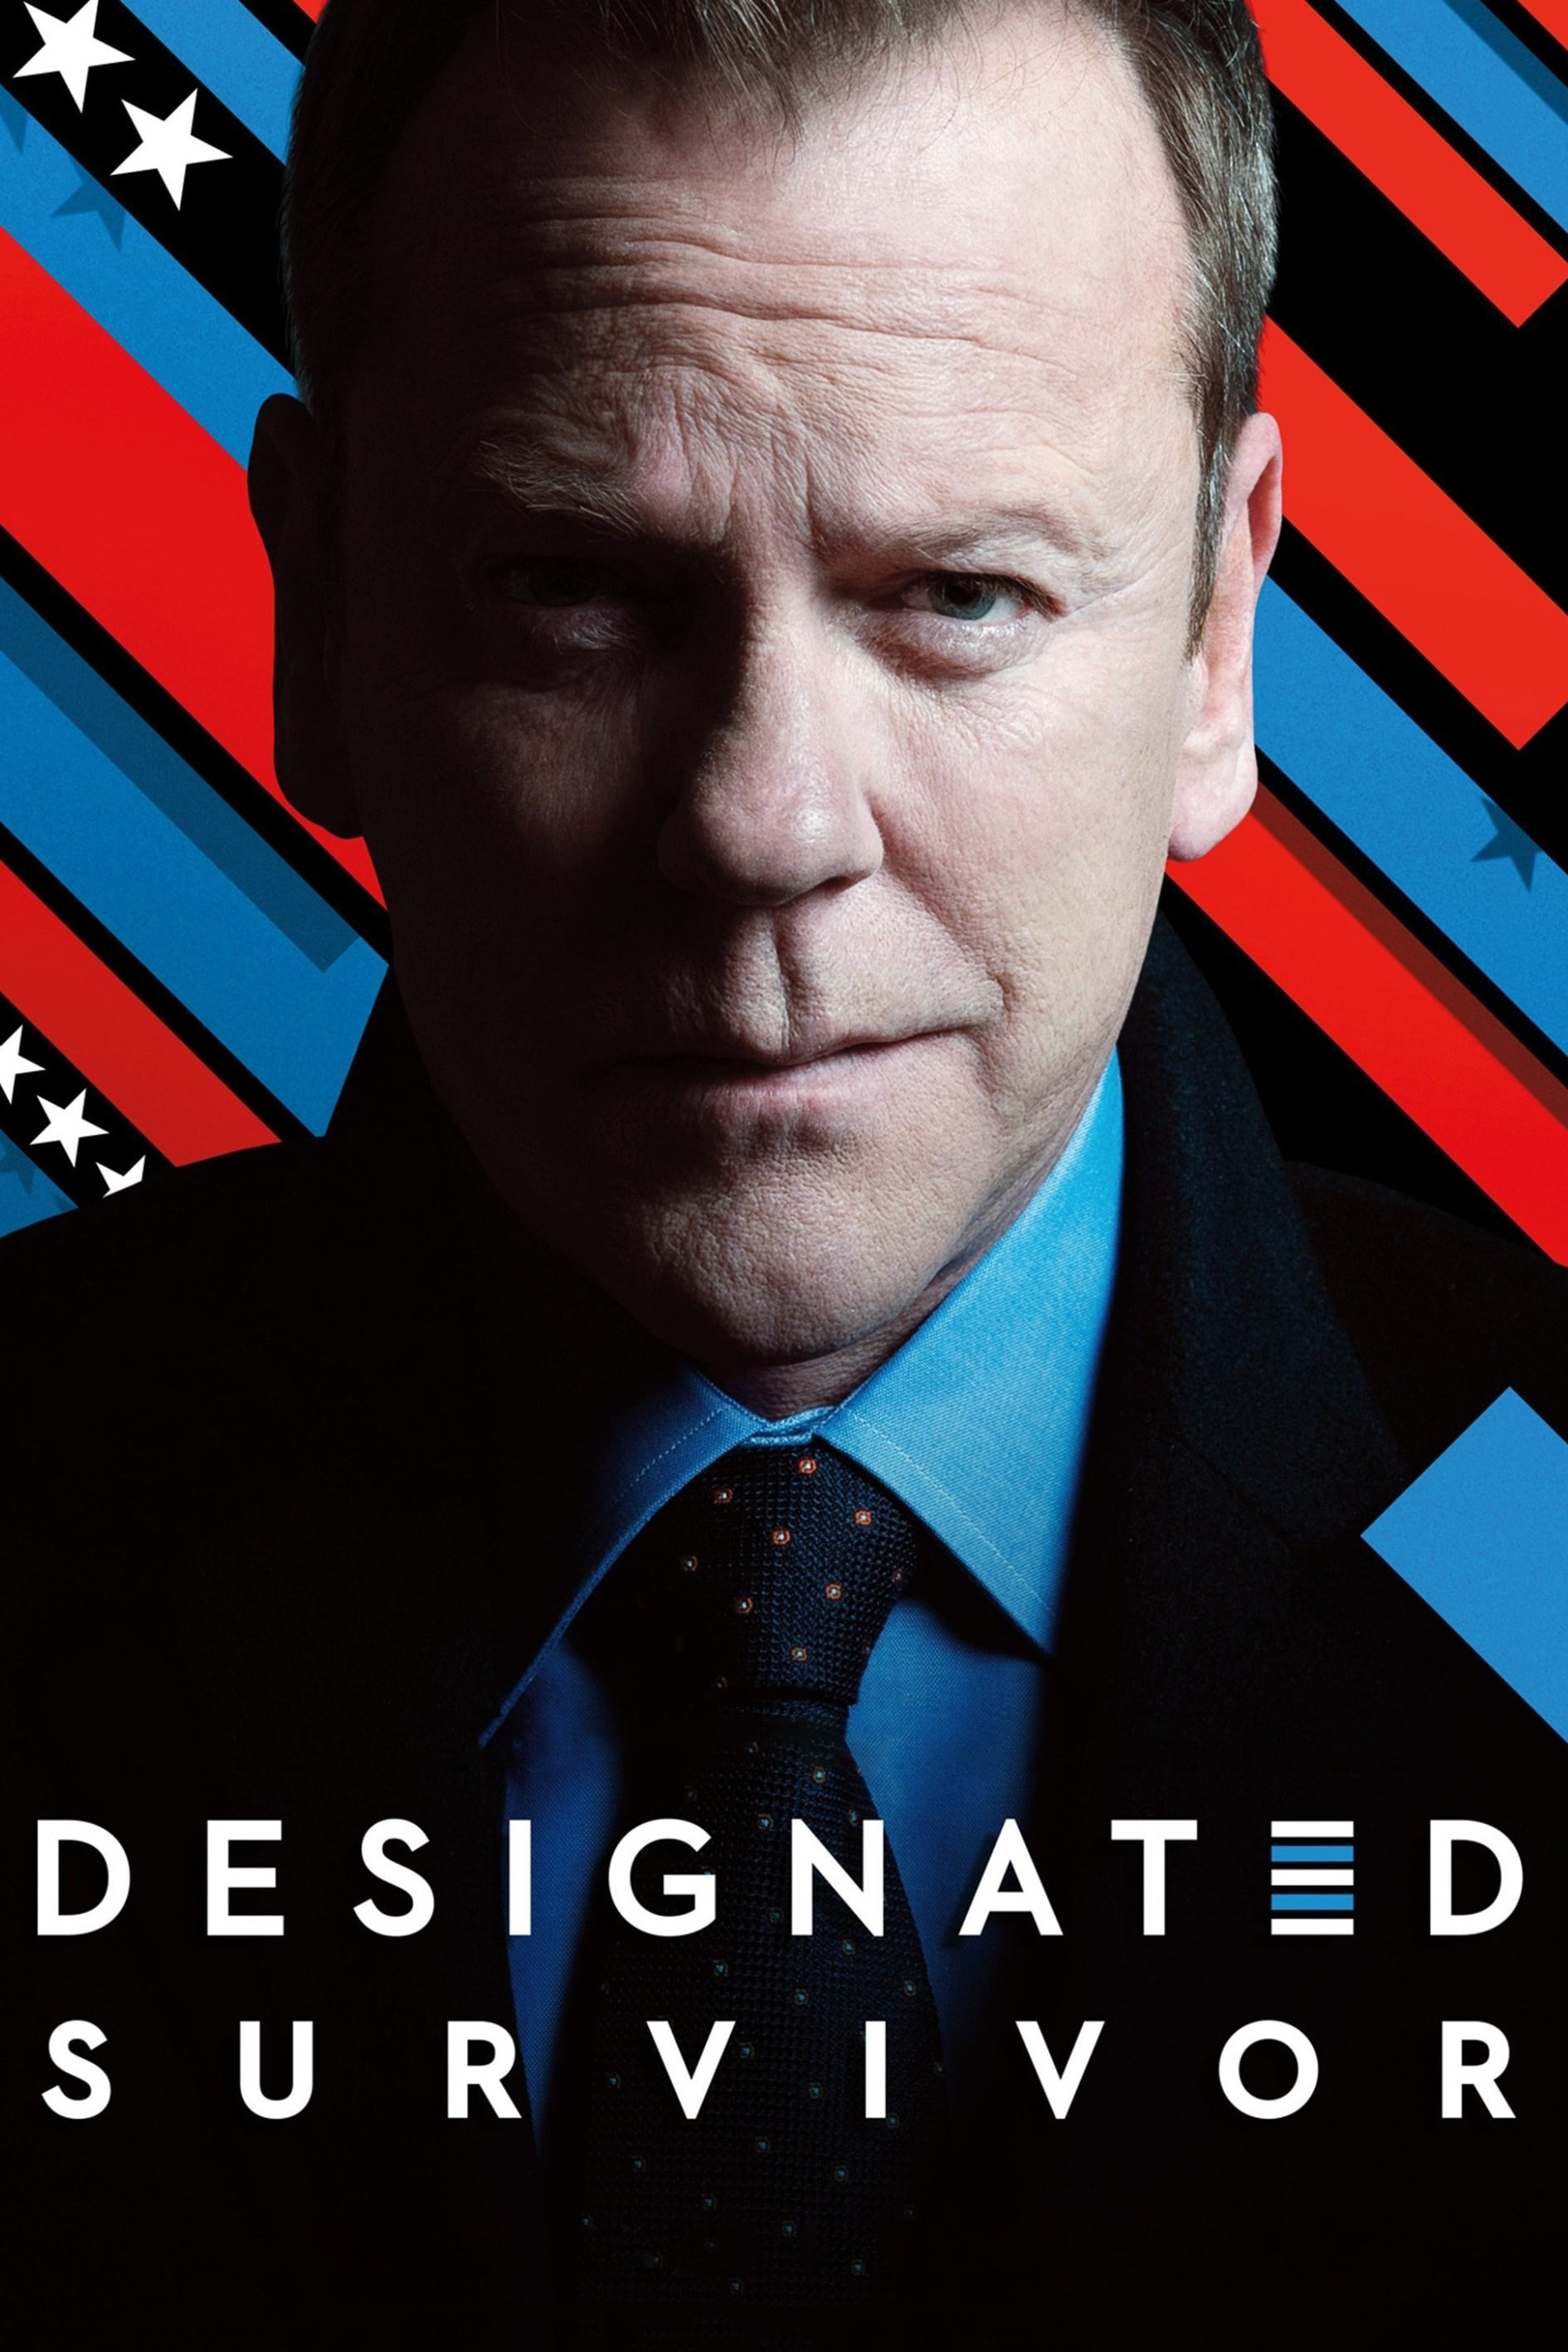 Image Designated Survivor